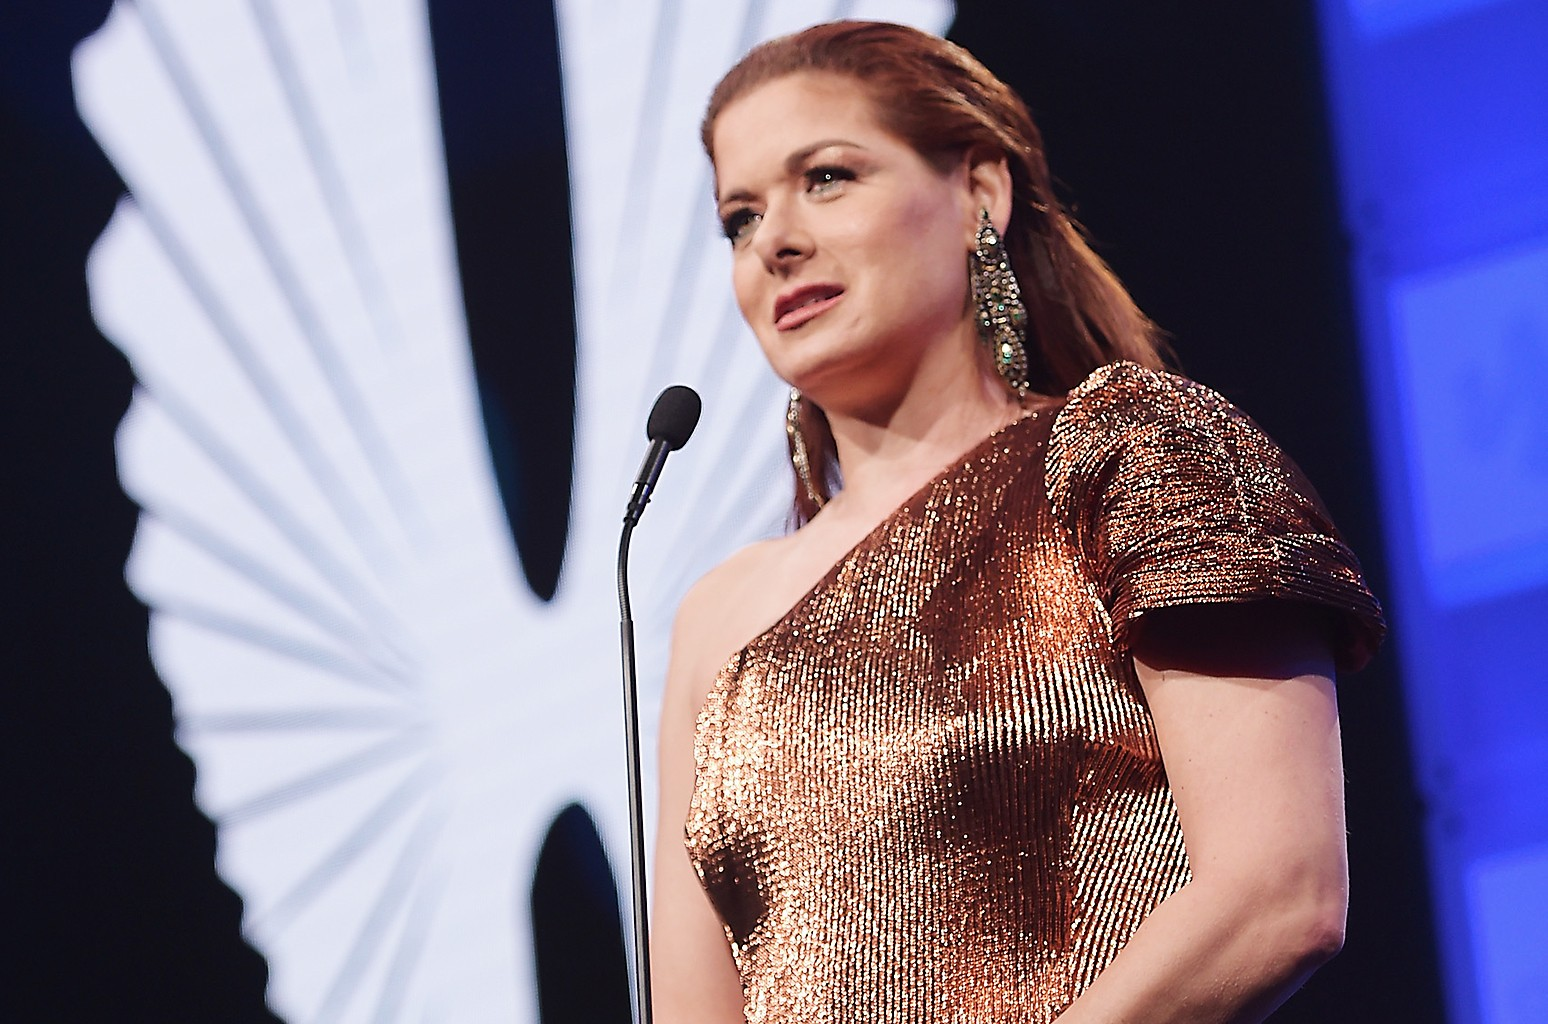 Debra Messing accepts the Excellence in Media award at the the 28th Annual GLAAD Media Awards at The Hilton Midtown on May 6, 2017 in New York City.